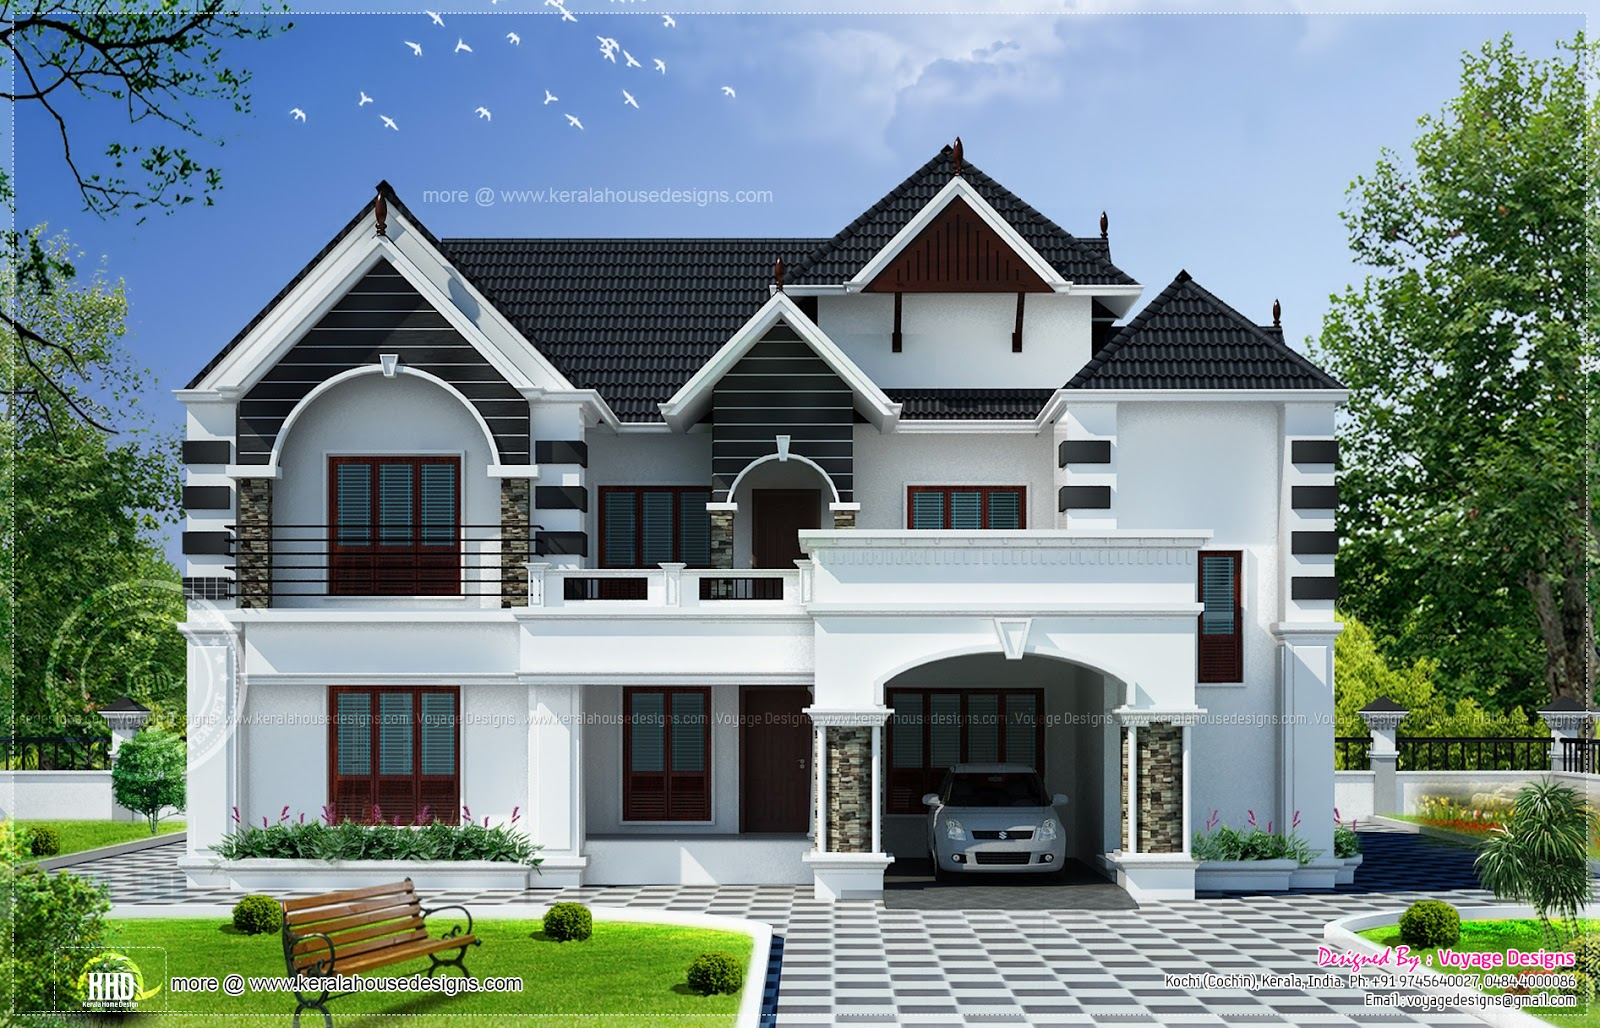 4 bedroom colonial style house kerala home design and for House design styles